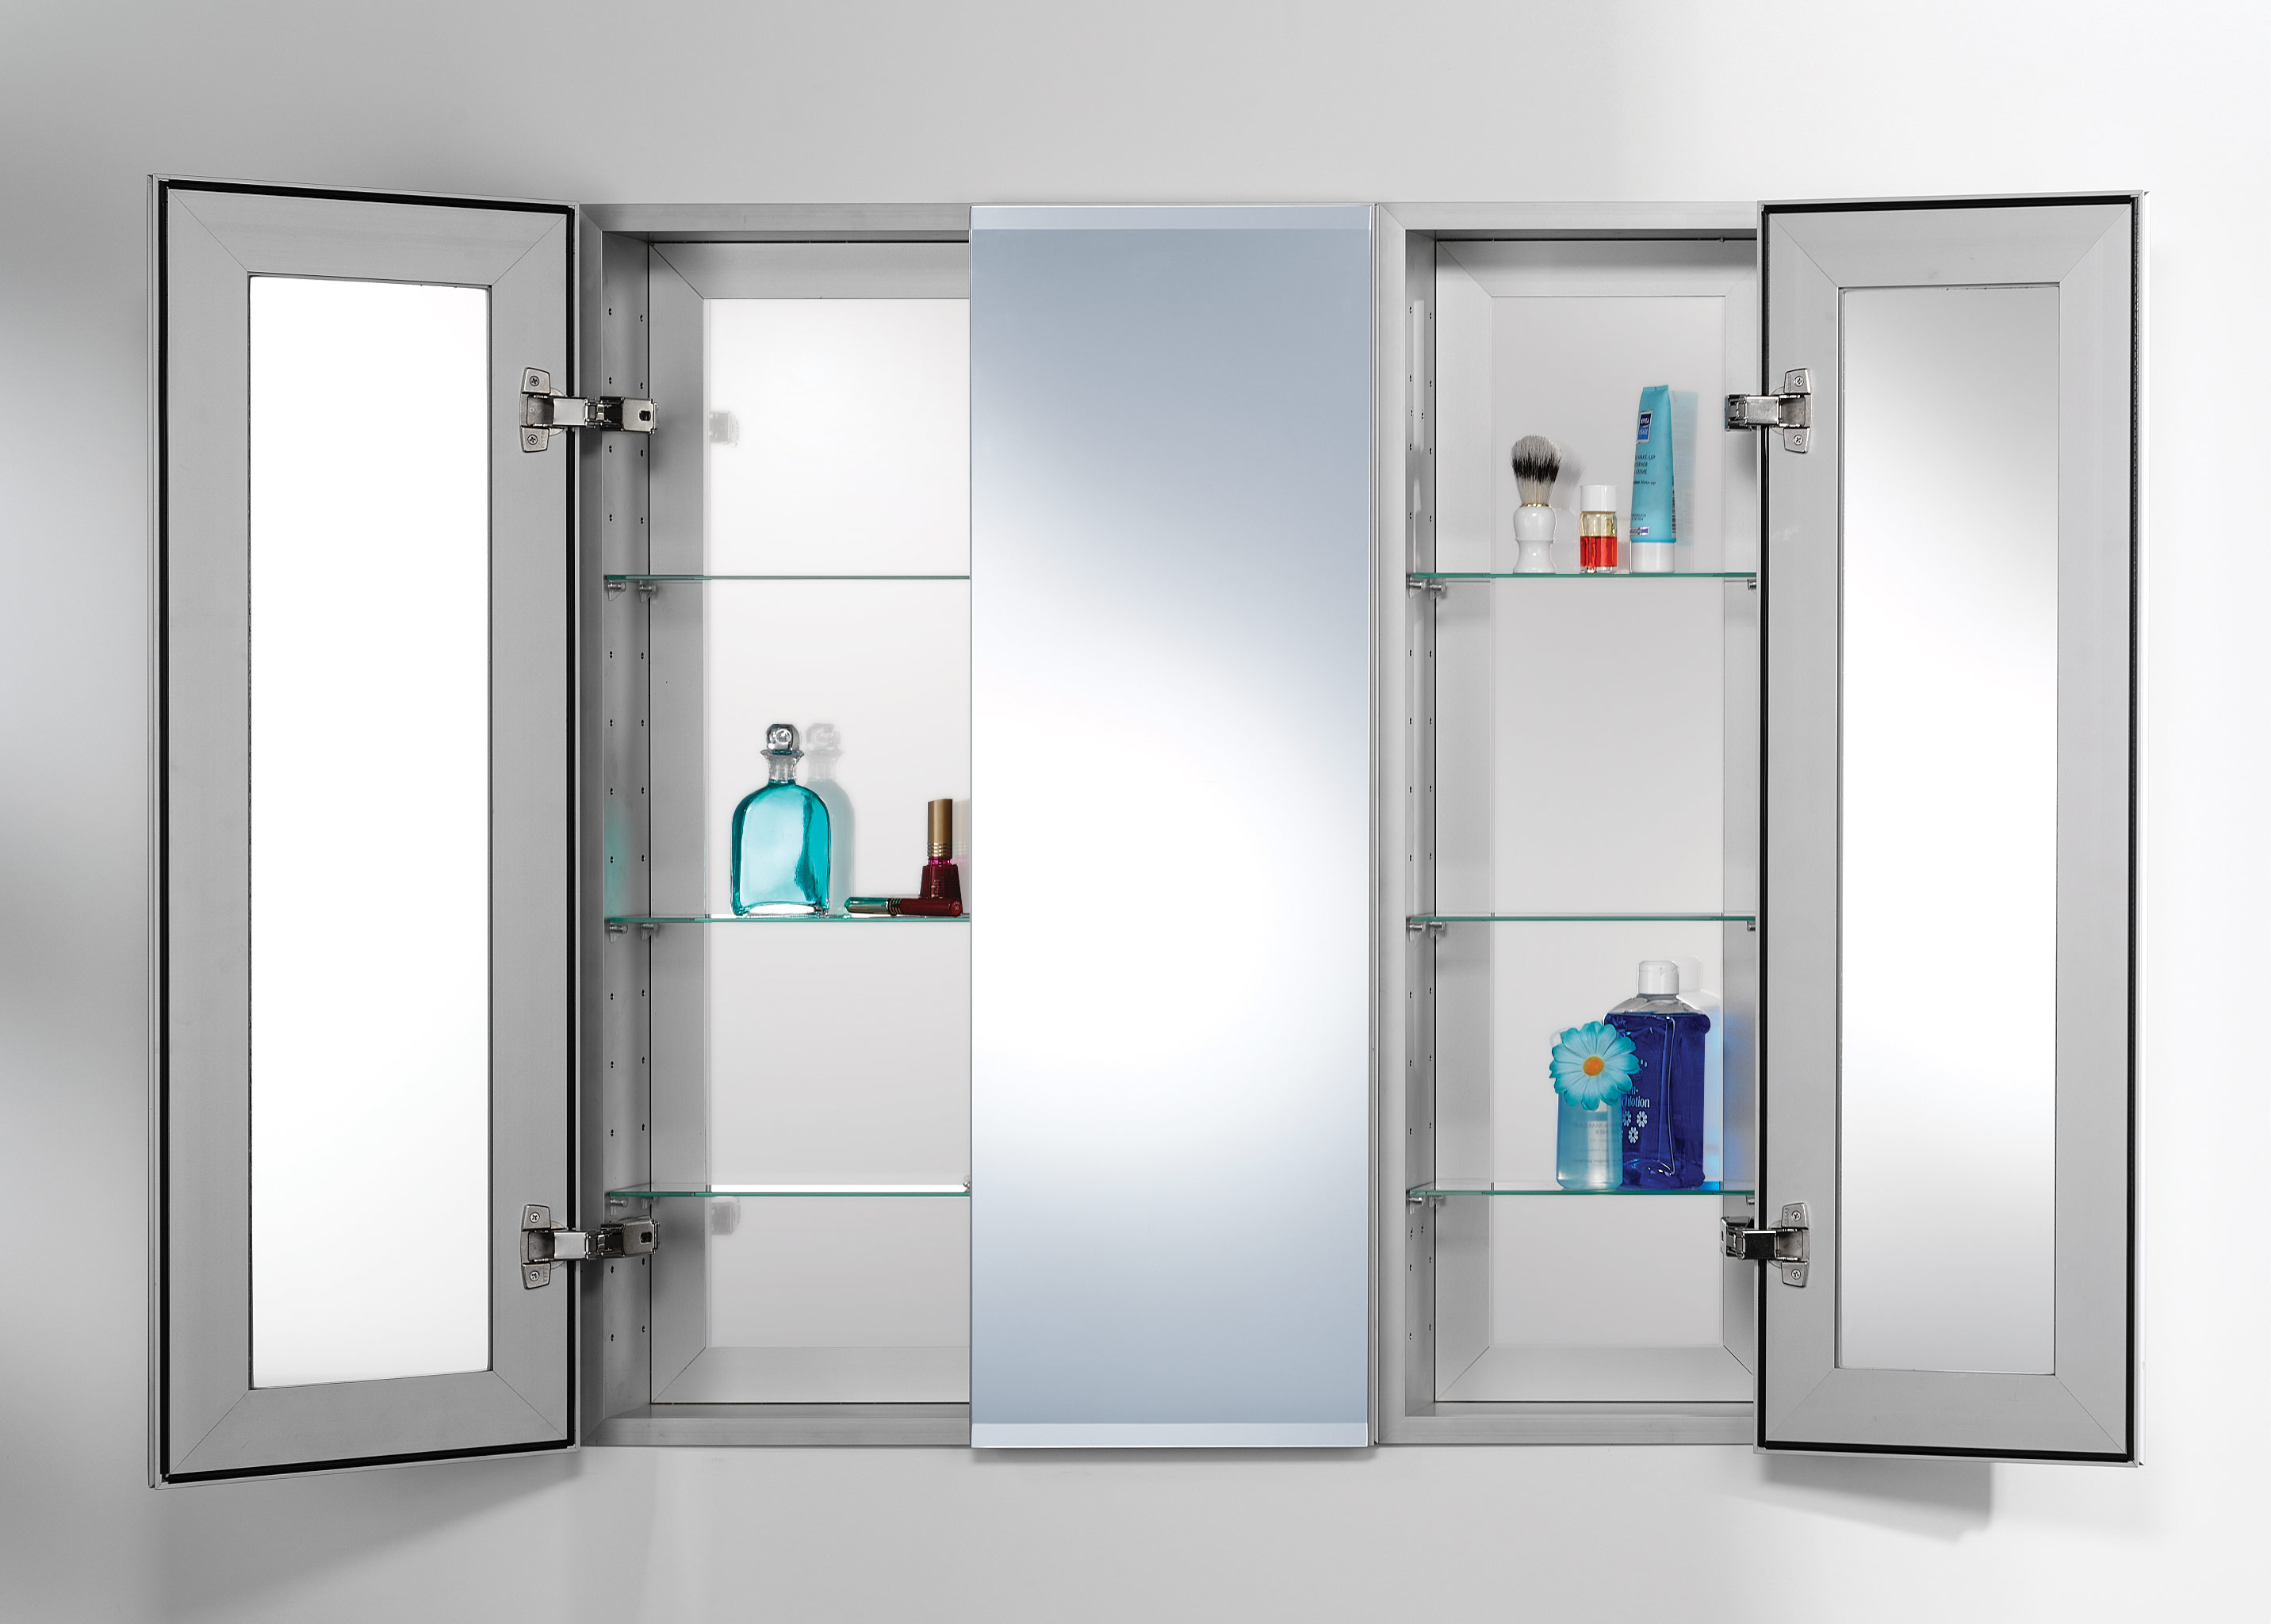 Genial Bathroom Mirrored Medicine Cabinet